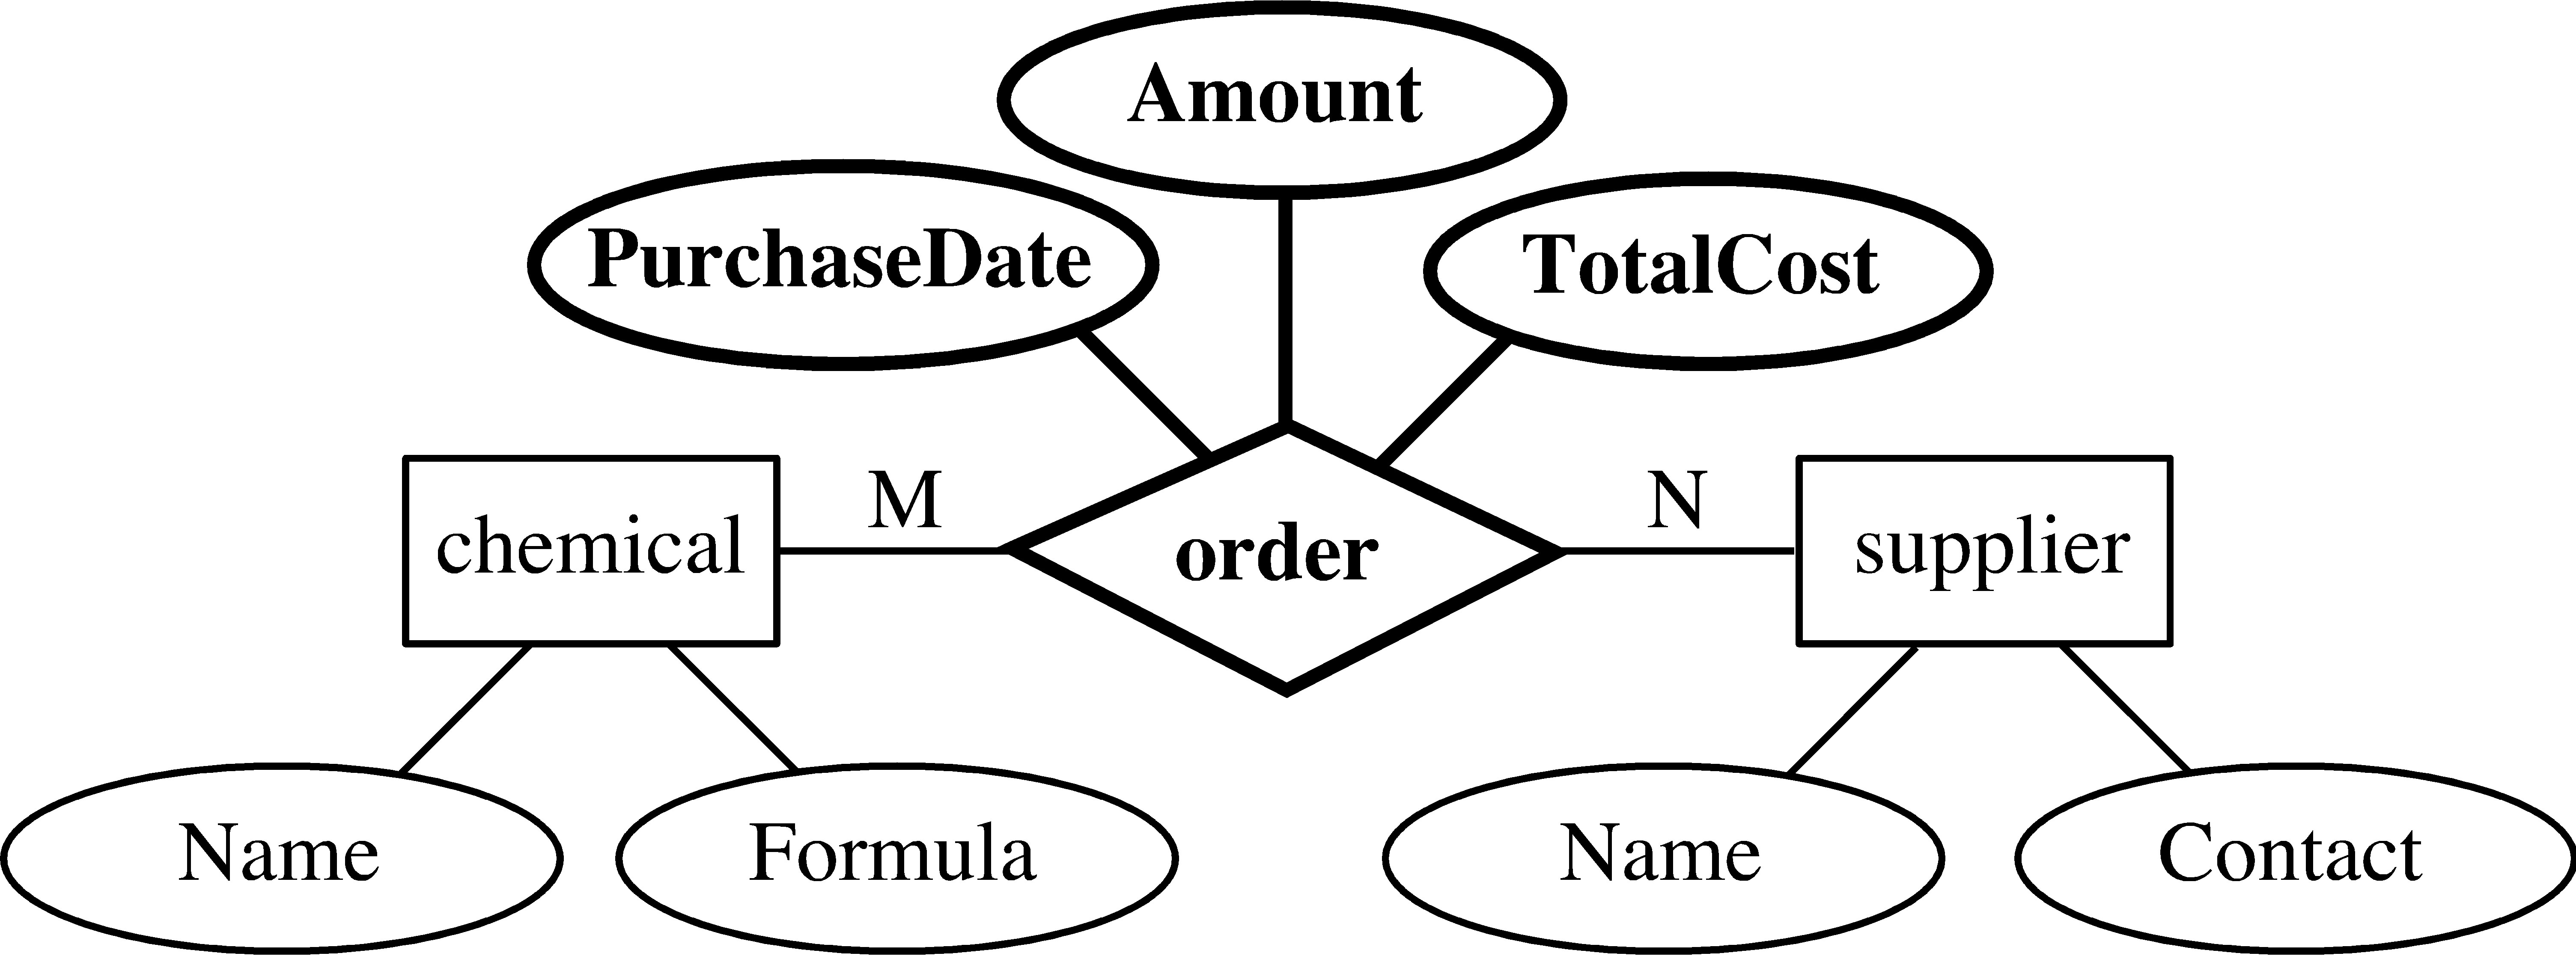 Entity-Relationship Model with Erm Entity Relationship Model